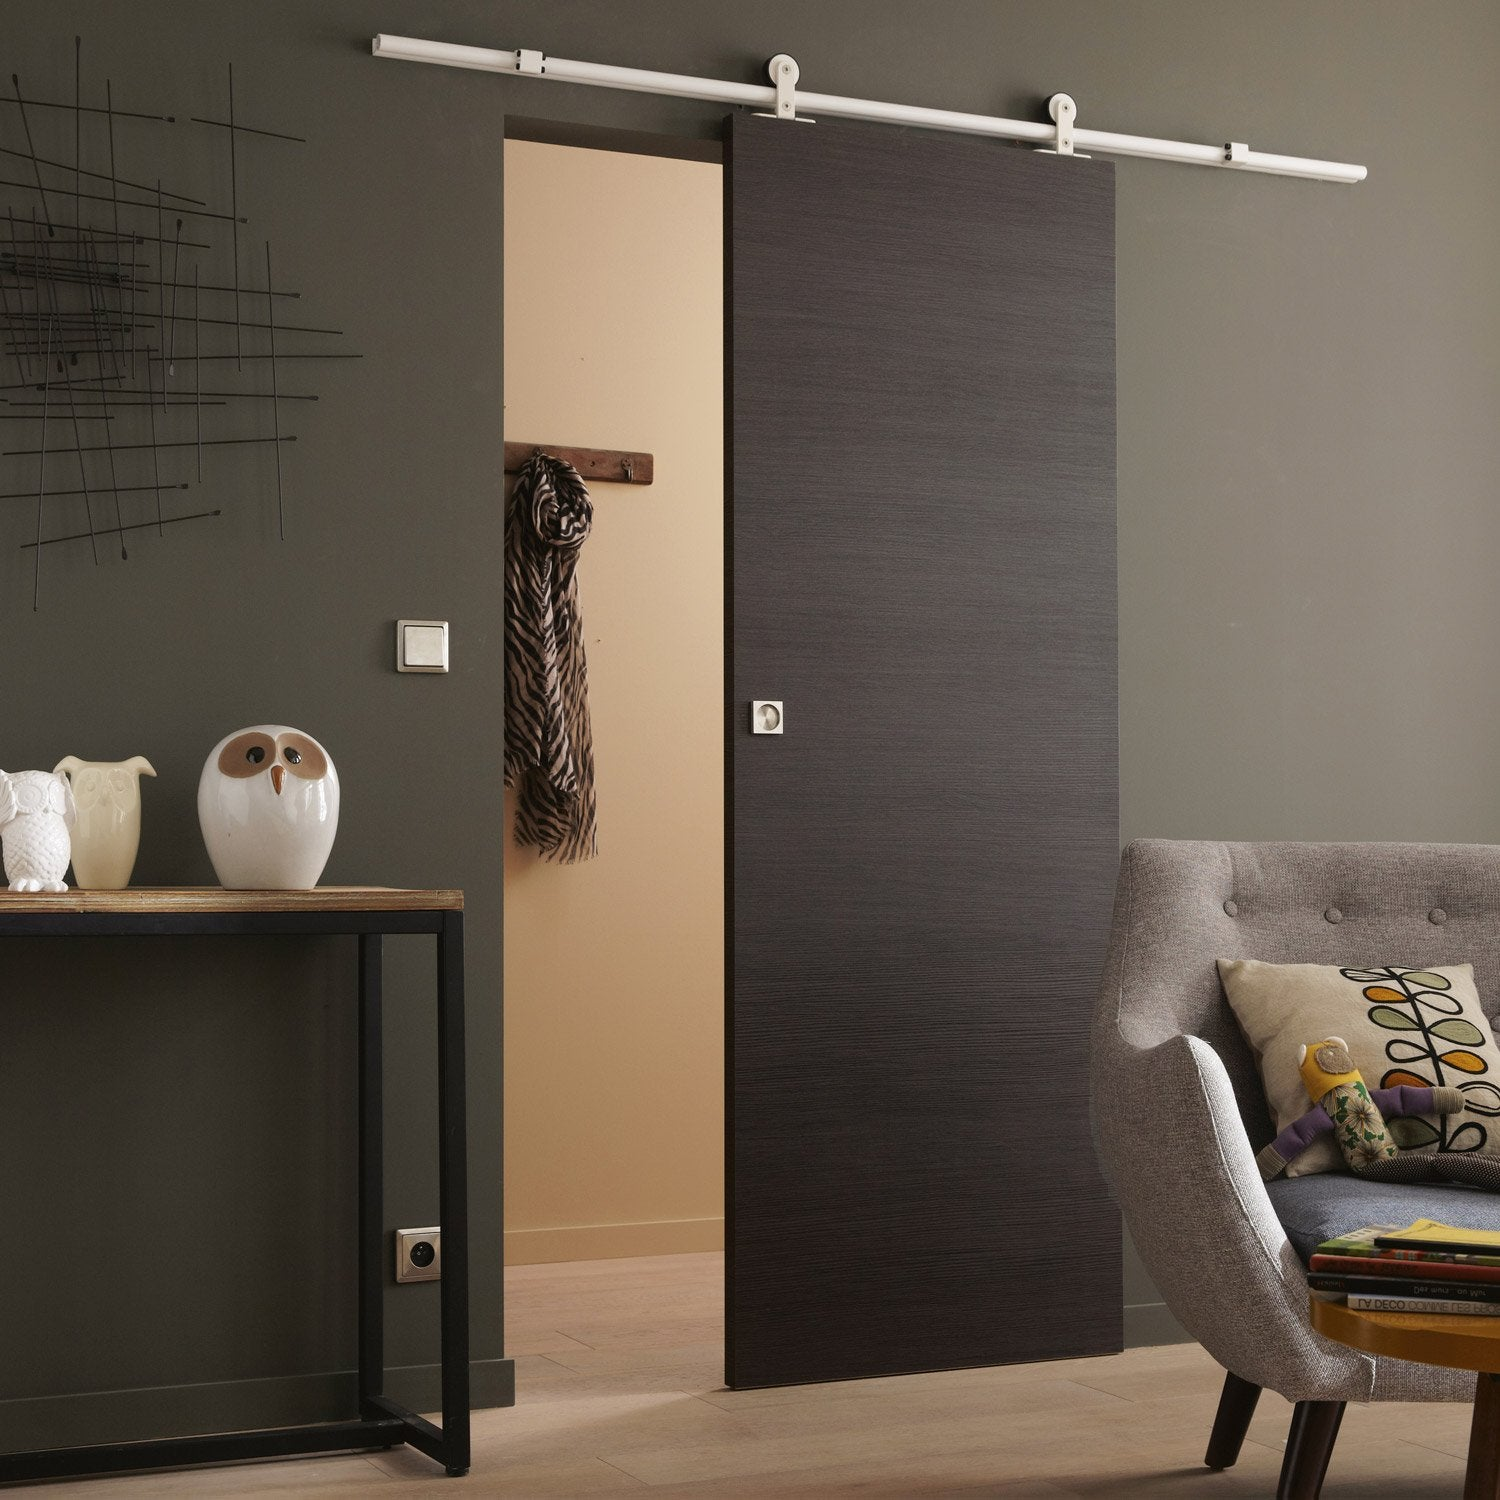 Pose d 39 une porte coulissante leroy merlin for Installer une porte coulissante